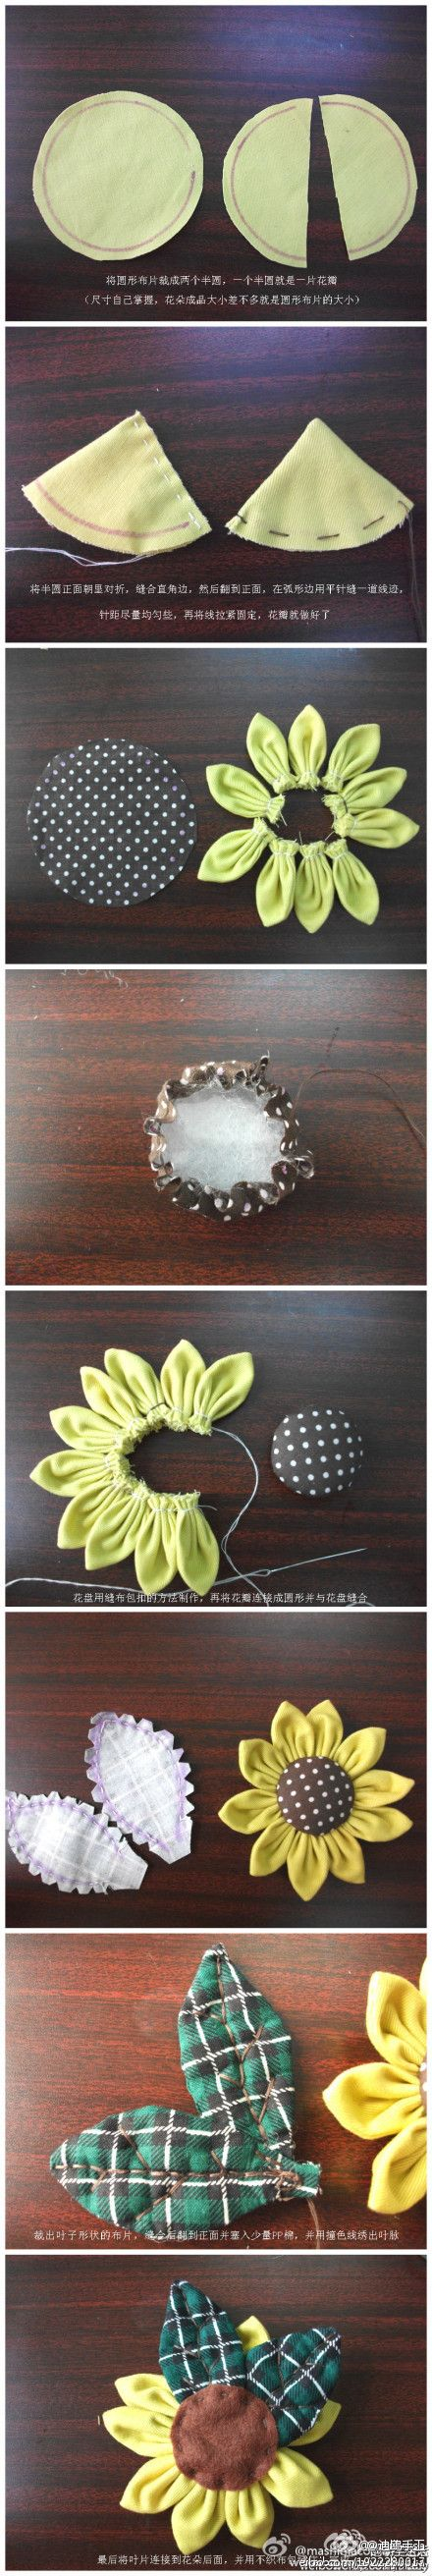 More little flowers for hair clips. ~Ariel